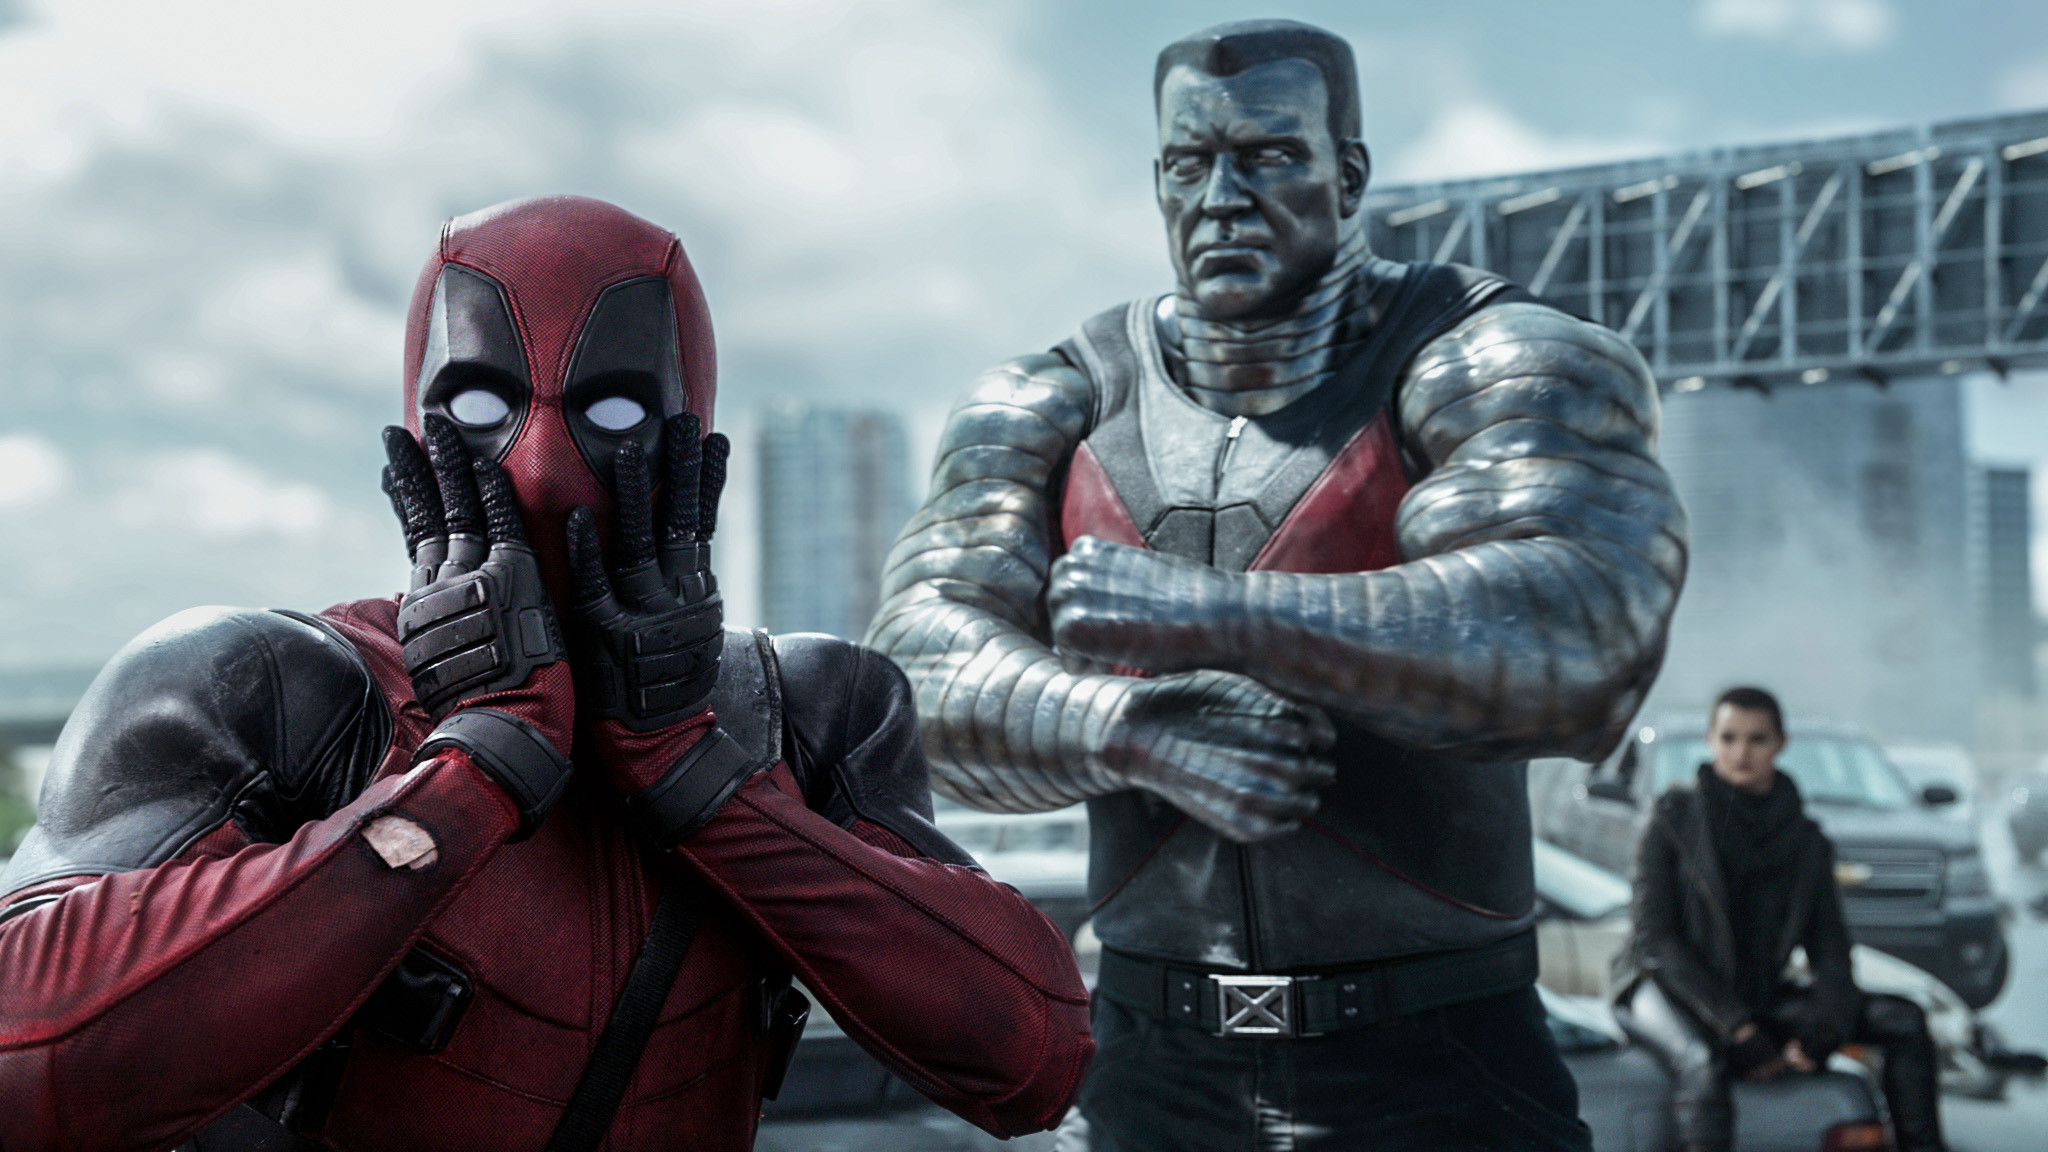 Res: 2048x1152, Peter Bart On 'Deadpool', The Blockbuster Whose Success No One Can Explain